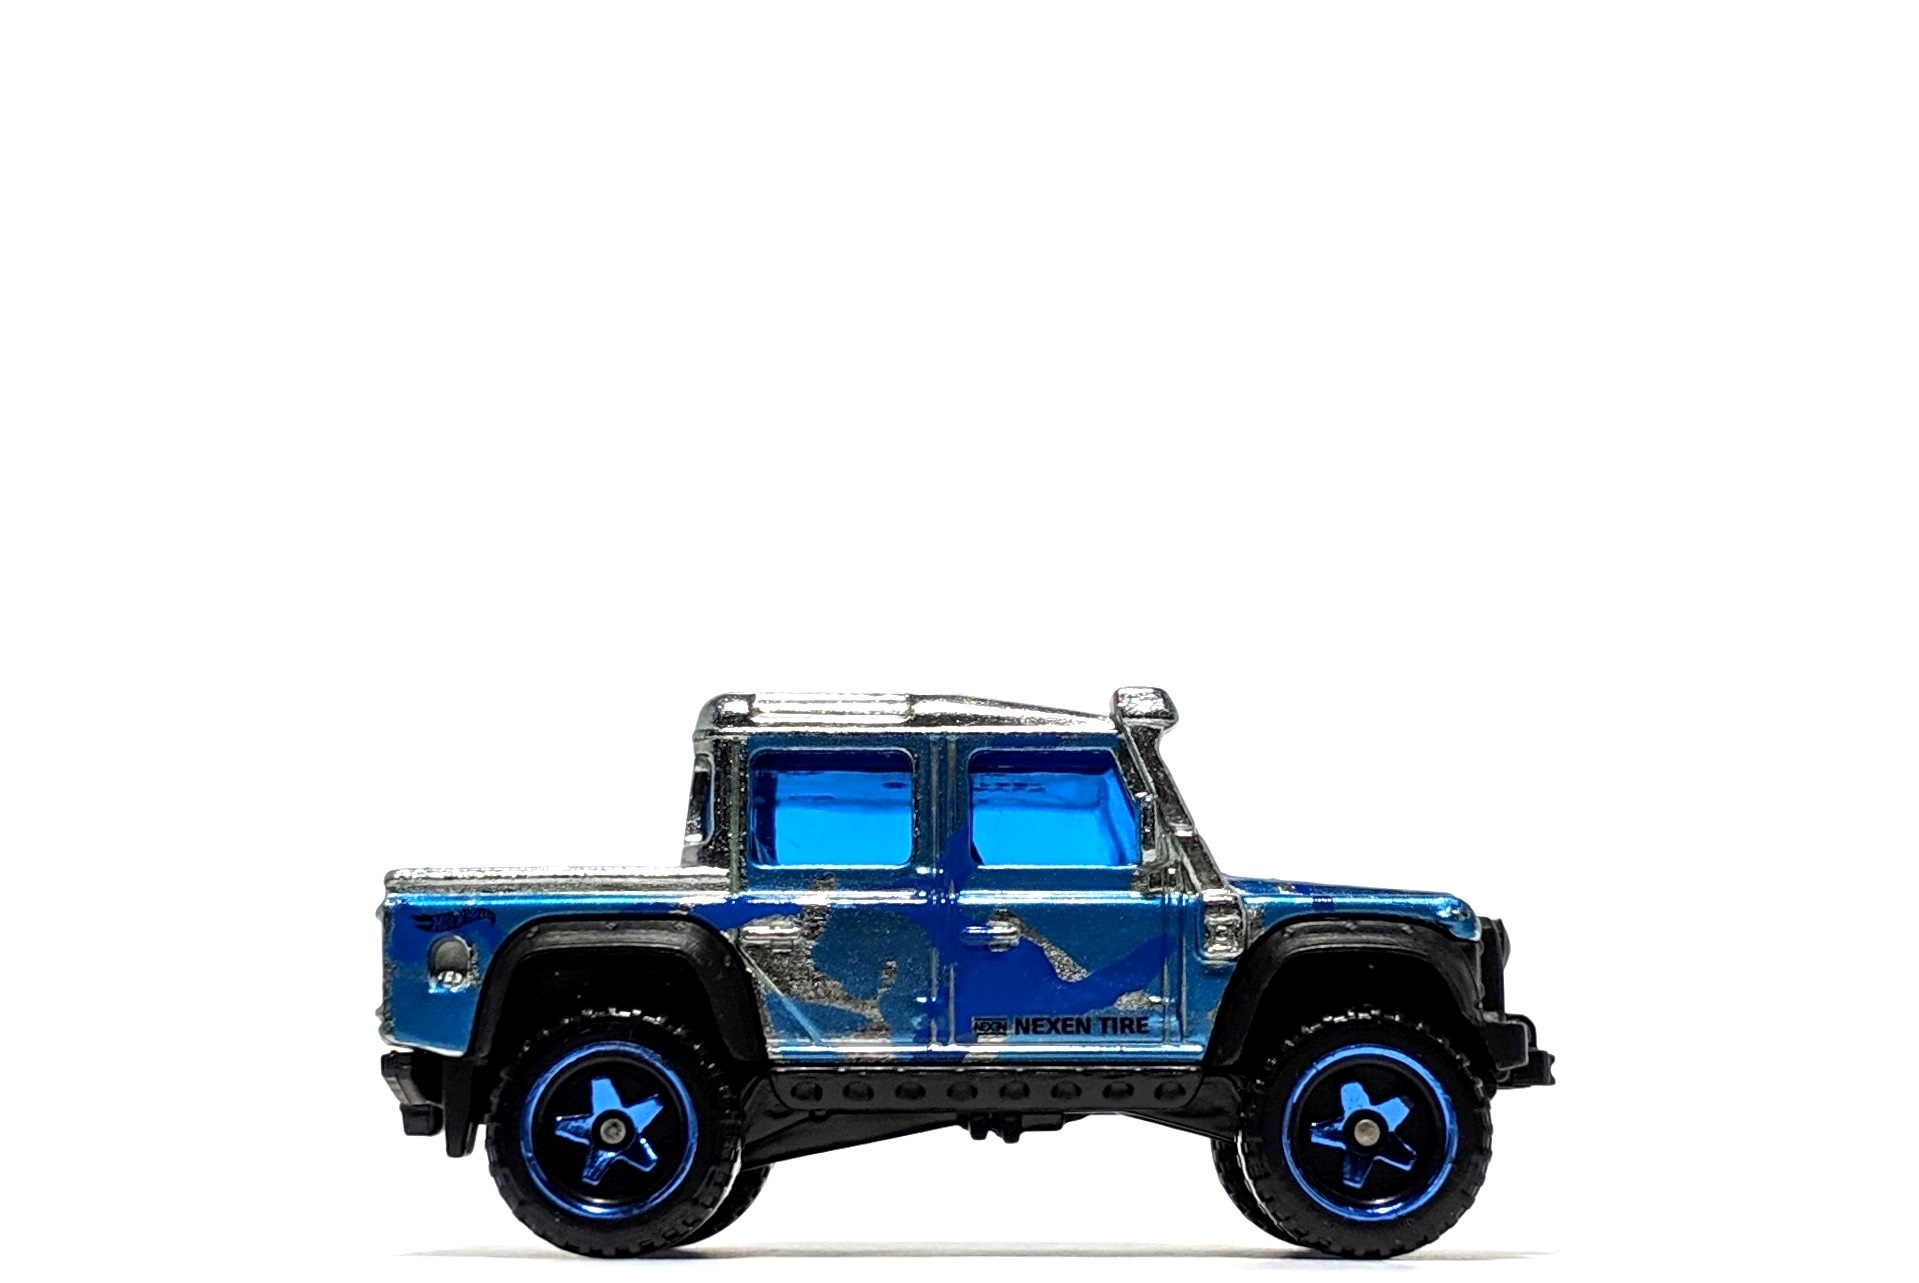 '15 Land Rover Defender Double Cab (Zamac), by Hot Wheels (Walmart-exclusive)